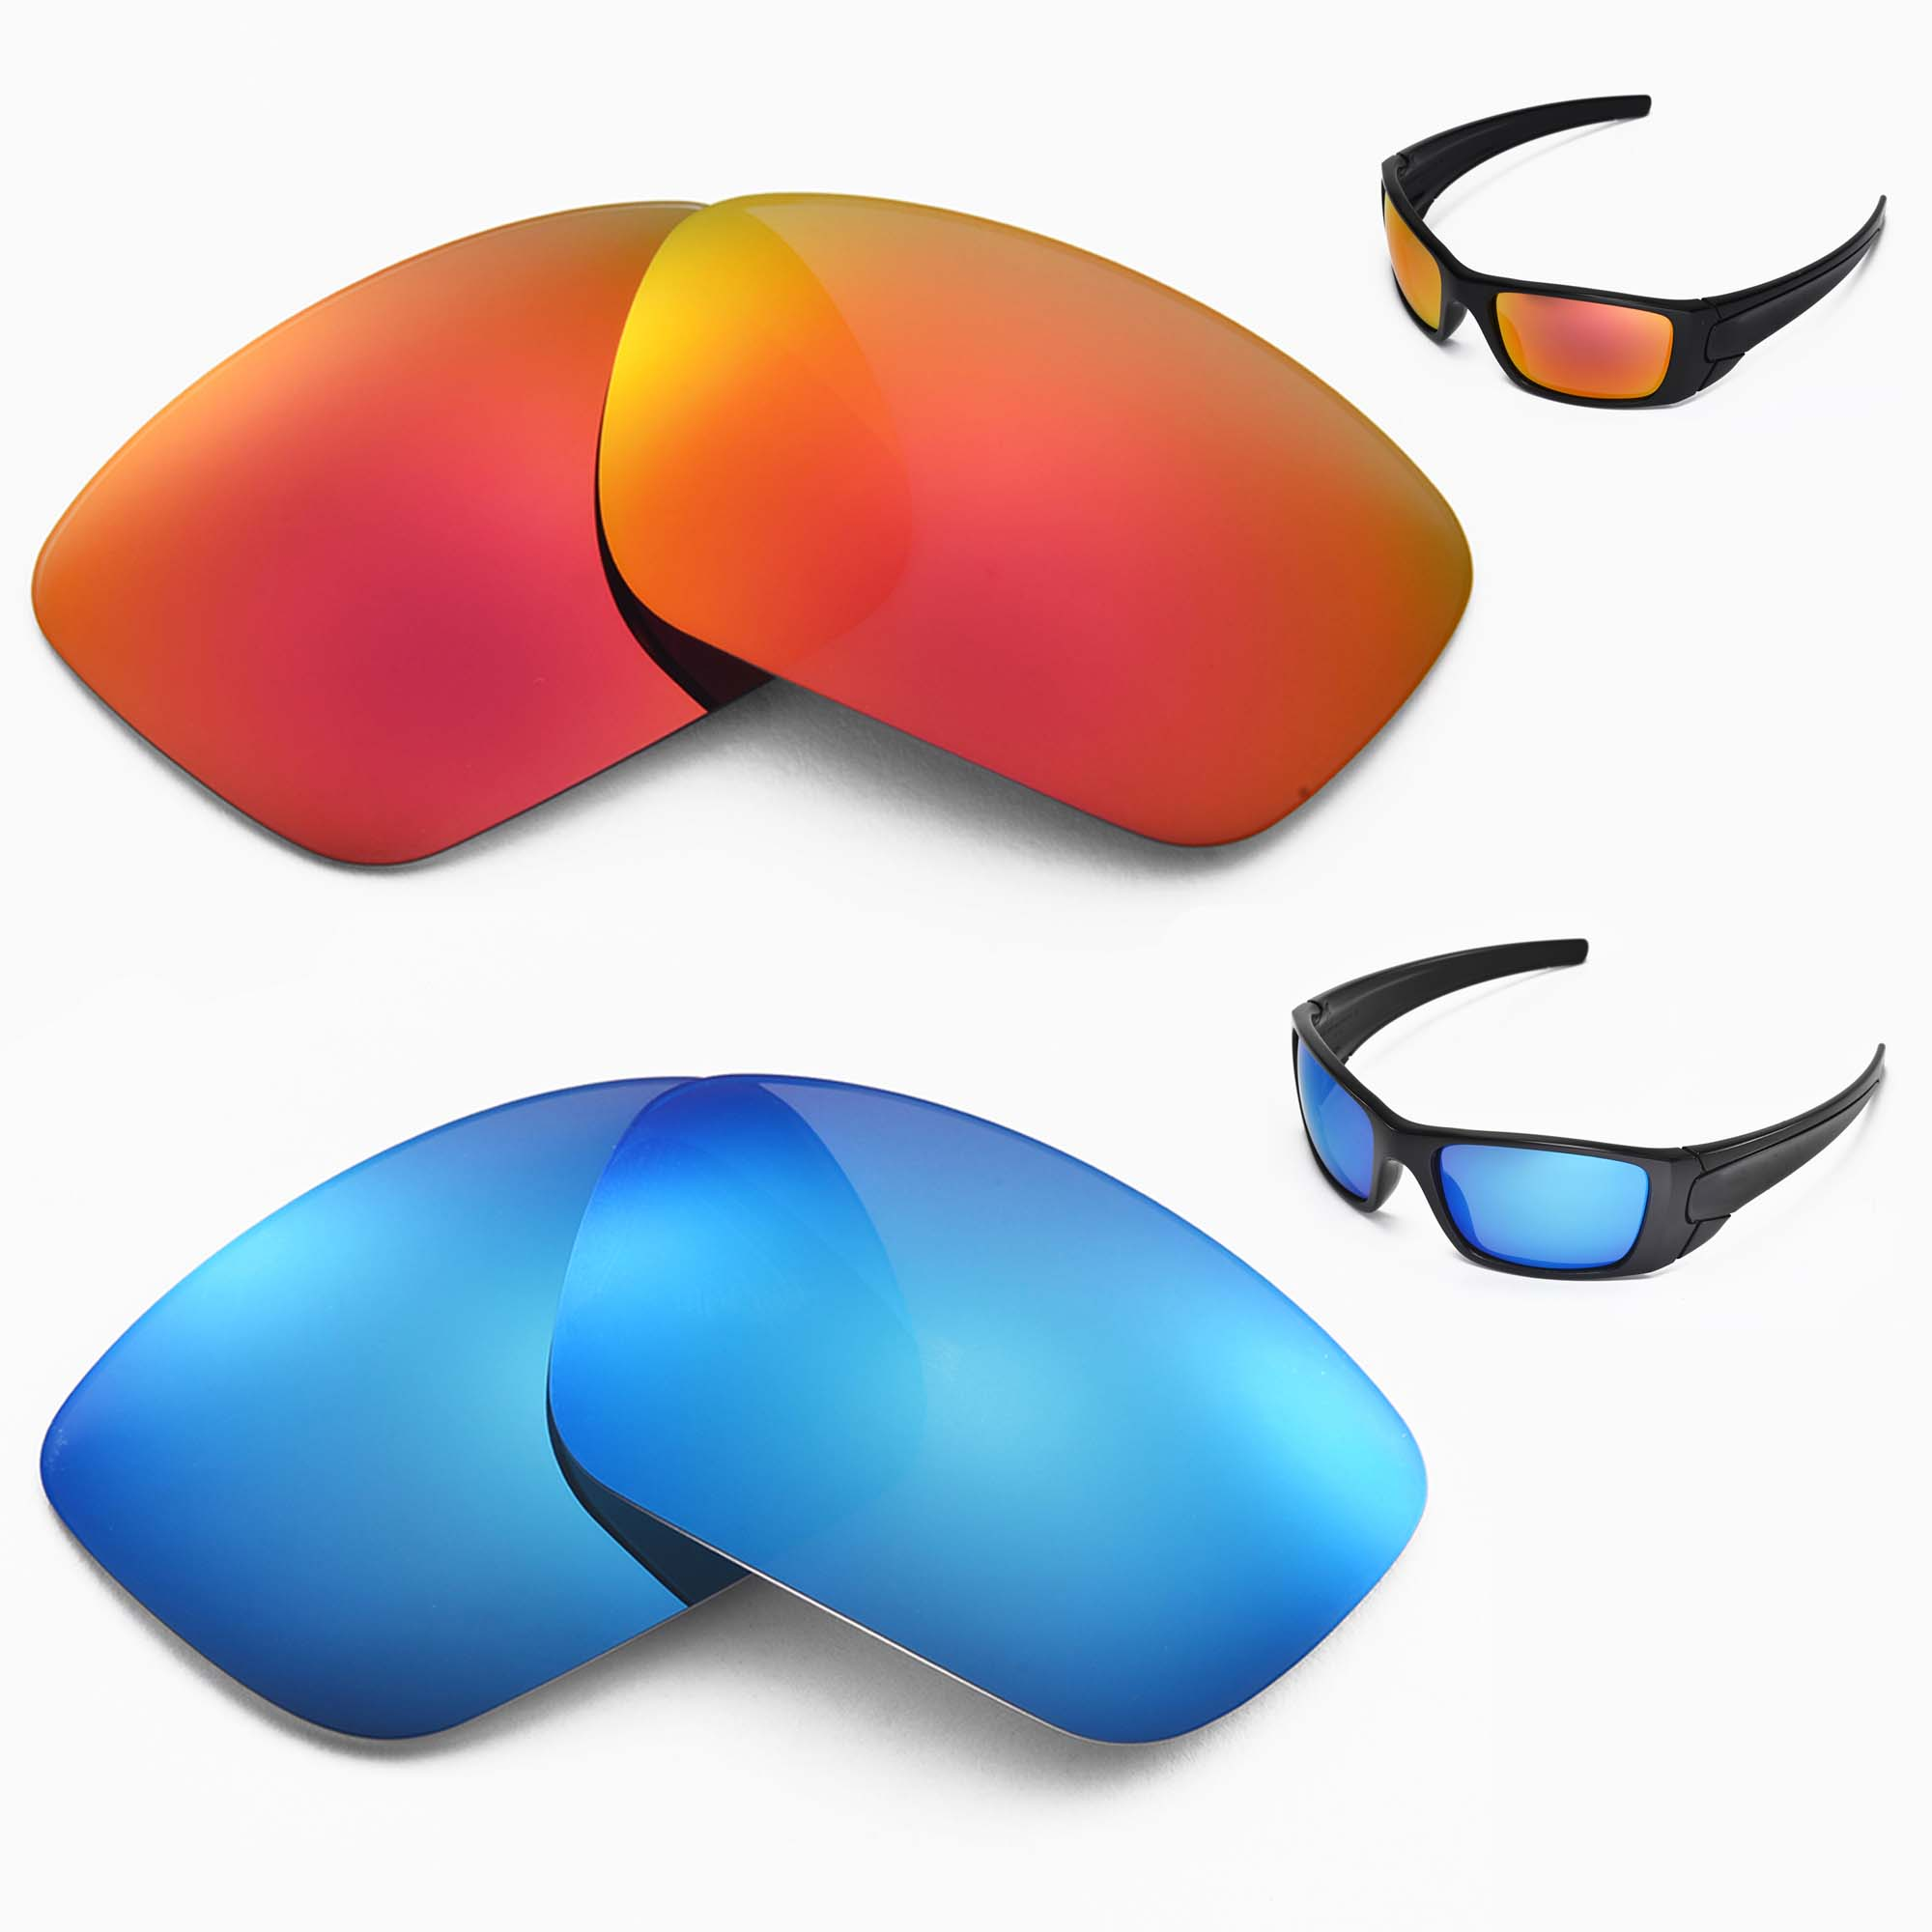 59f0cdb525 ... Walleva Polarized Fire Red Lenses for Oakley Fuel Cell x1  Walleva  Microfiber Lens Cleaning Cloth x2. main image